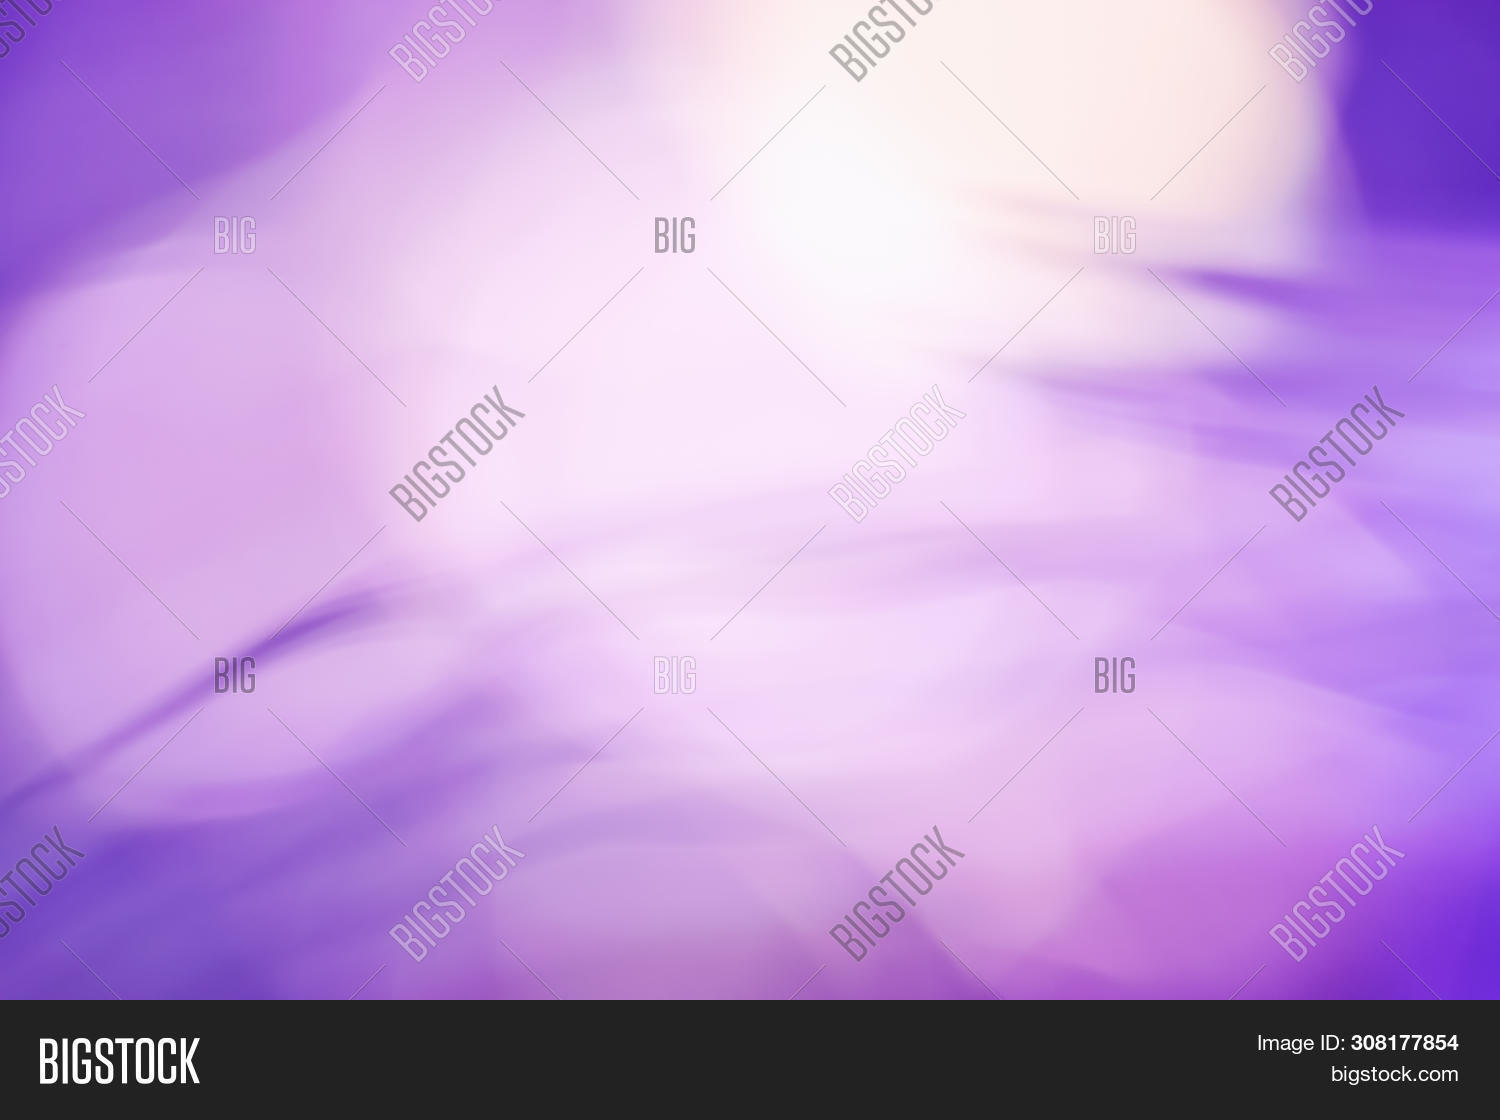 abstract,abstraction,art,artwork,backdrop,background,banner,blue,blur,blurry,bokeh,bright,color,colorful,composition,concept,copy,cover,creative,decor,decoration,design,desktop,focus,for,futuristic,glow,graphic,light,luxury,magical,natural,nature,purple,shape,shine,shiny,soft,softness,space,style,template,text,texture,white,wind